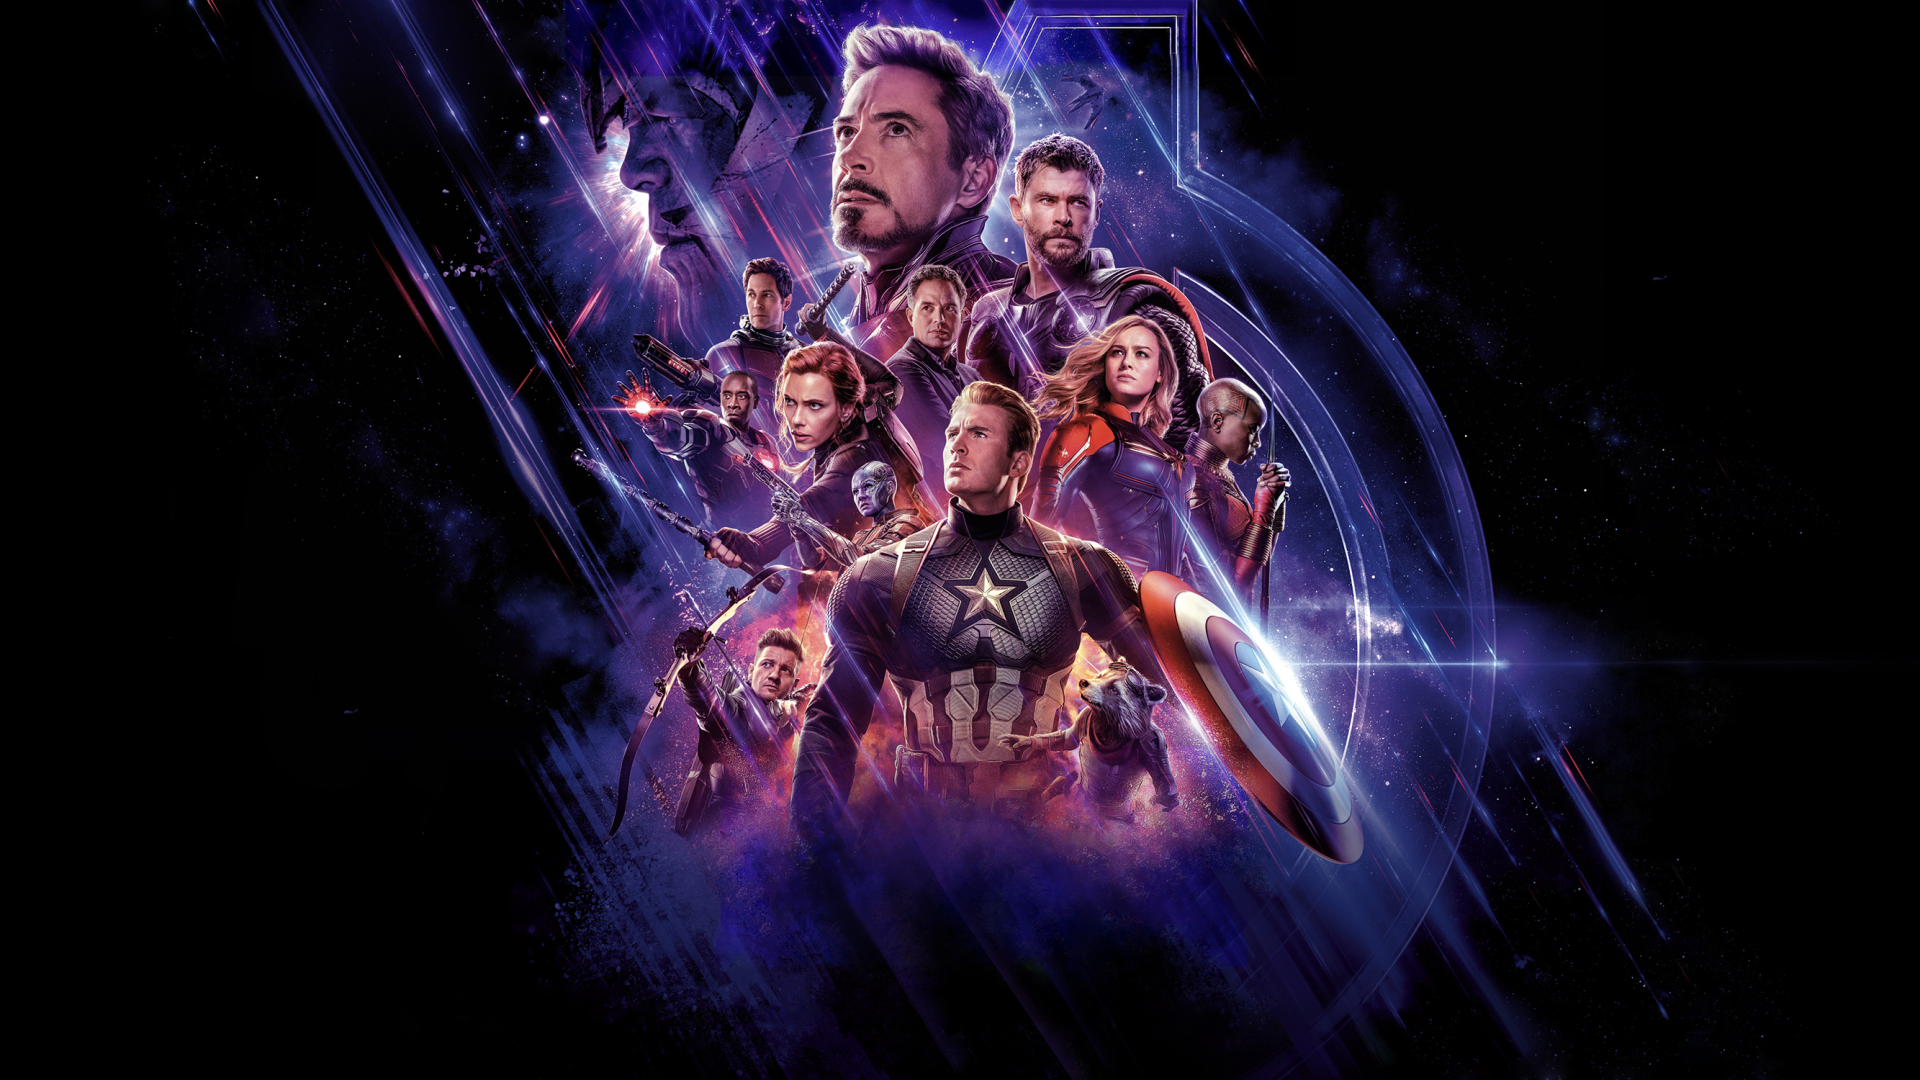 267 Avengers Endgame Hd Wallpapers Background Images Wallpaper Abyss